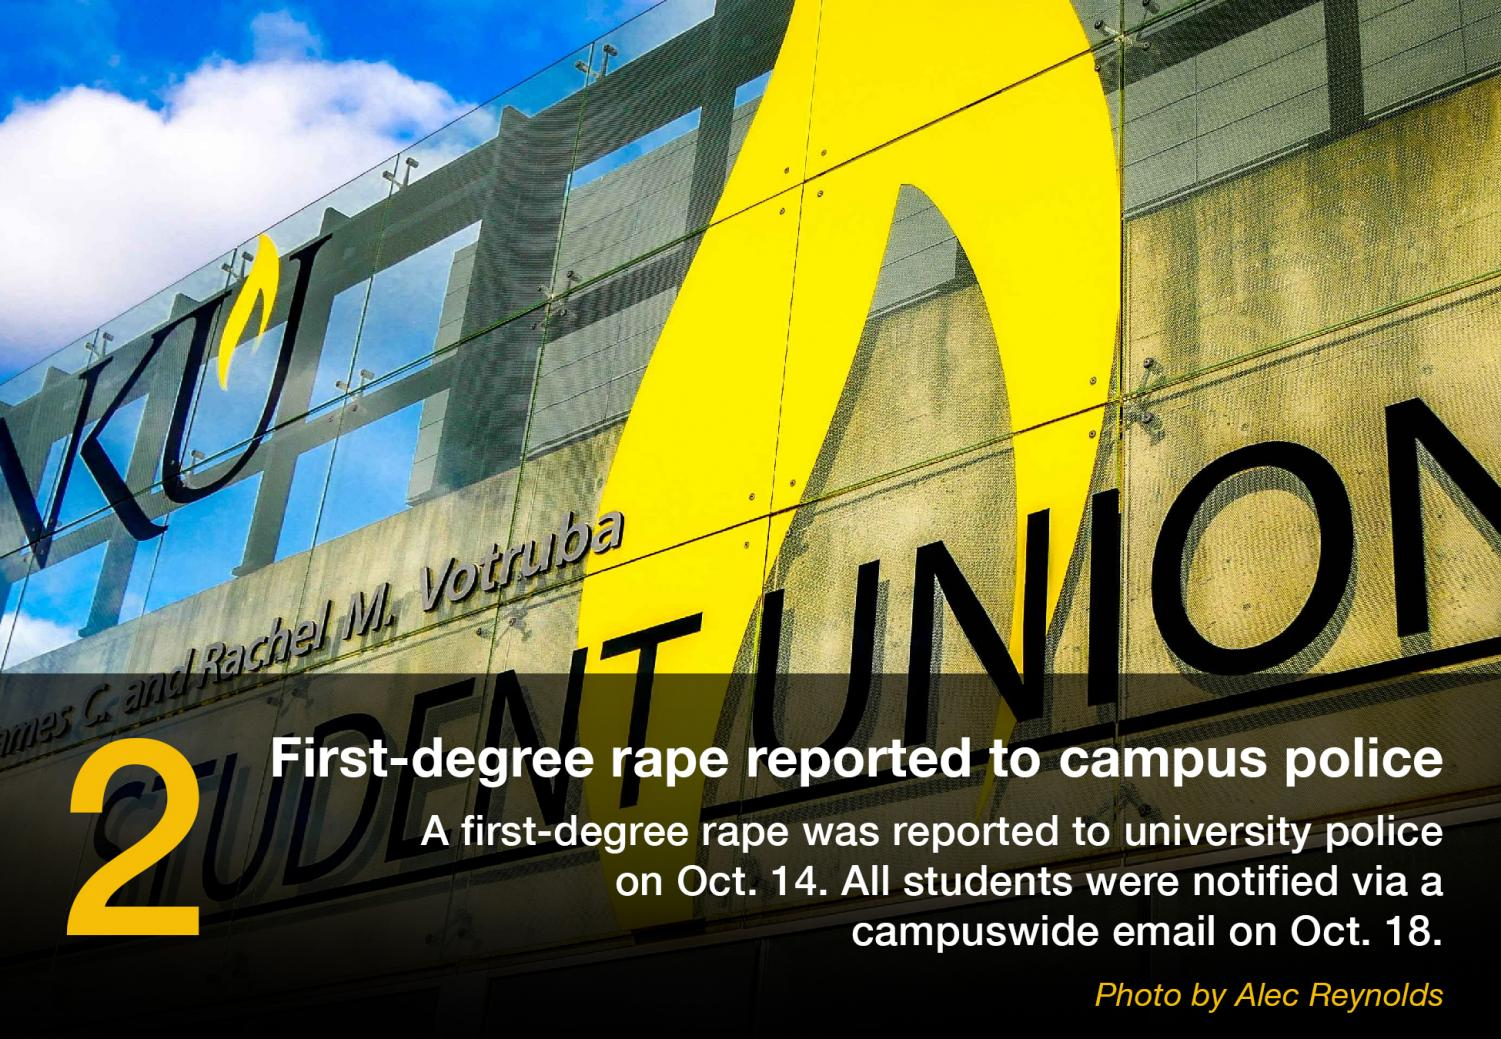 A+first-degree+rape+was+reported+to+university+police+on+Oct.+14.+All+students+were+notified+via+a+campus-wide+email+on+Oct.+18.+